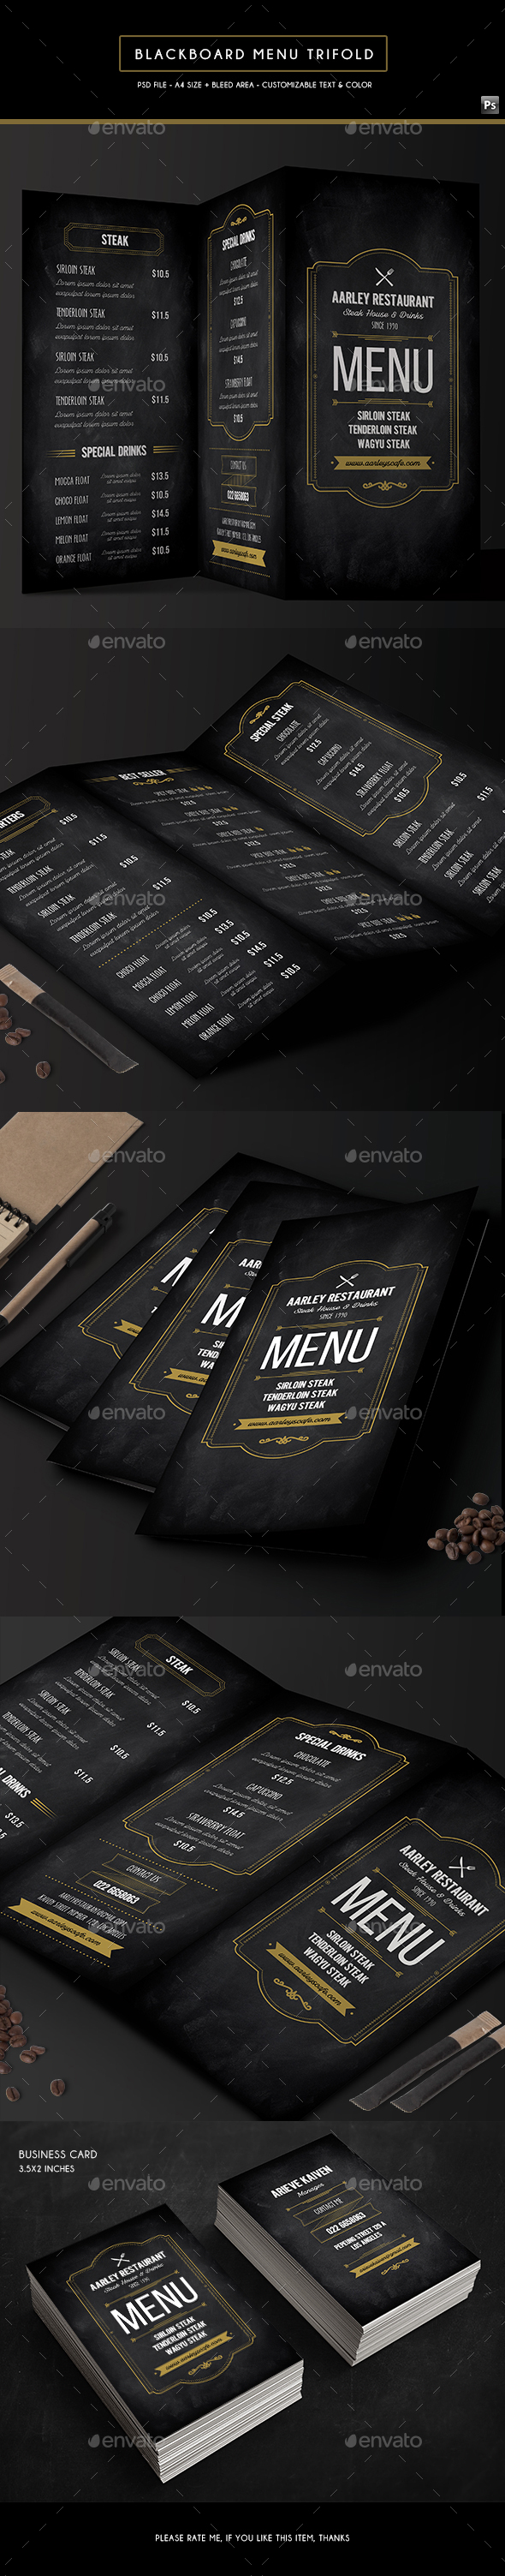 Blackboard food menu trifold business card by arifpoernomo blackboard food menu trifold business card food menus print templates colourmoves